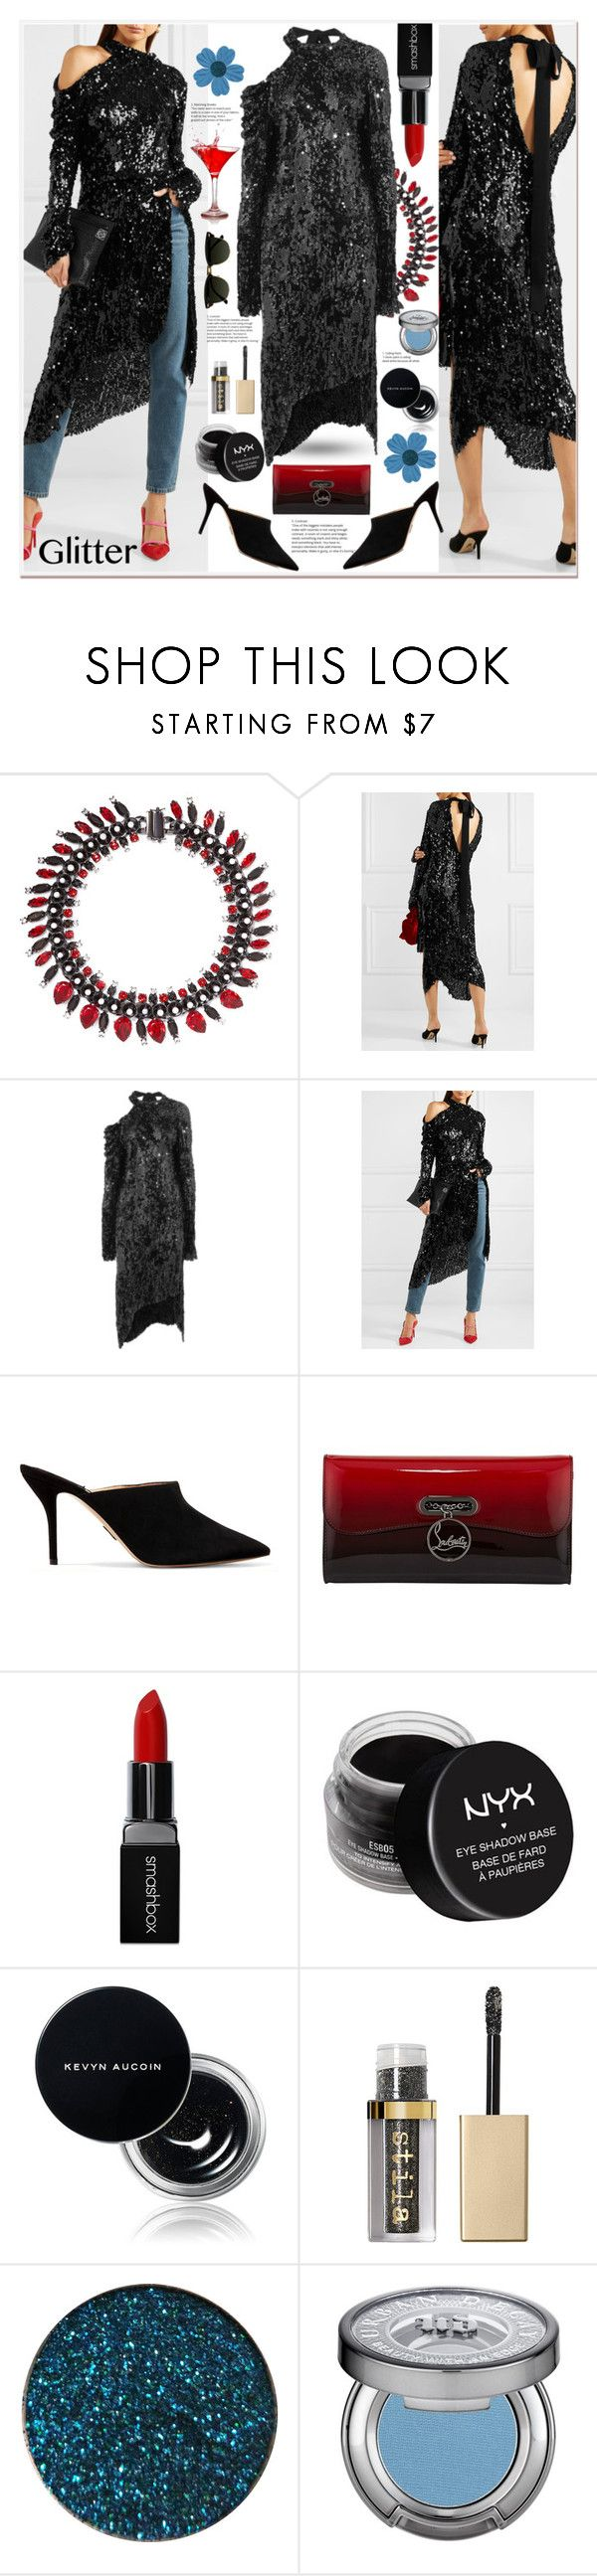 """Glitter Life"" by zouus ❤ liked on Polyvore featuring Givenchy, Magda Butrym, Paul Andrew, Christian Louboutin, Smashbox, NYX, Kevyn Aucoin, Stila, Urban Decay and Pippa"